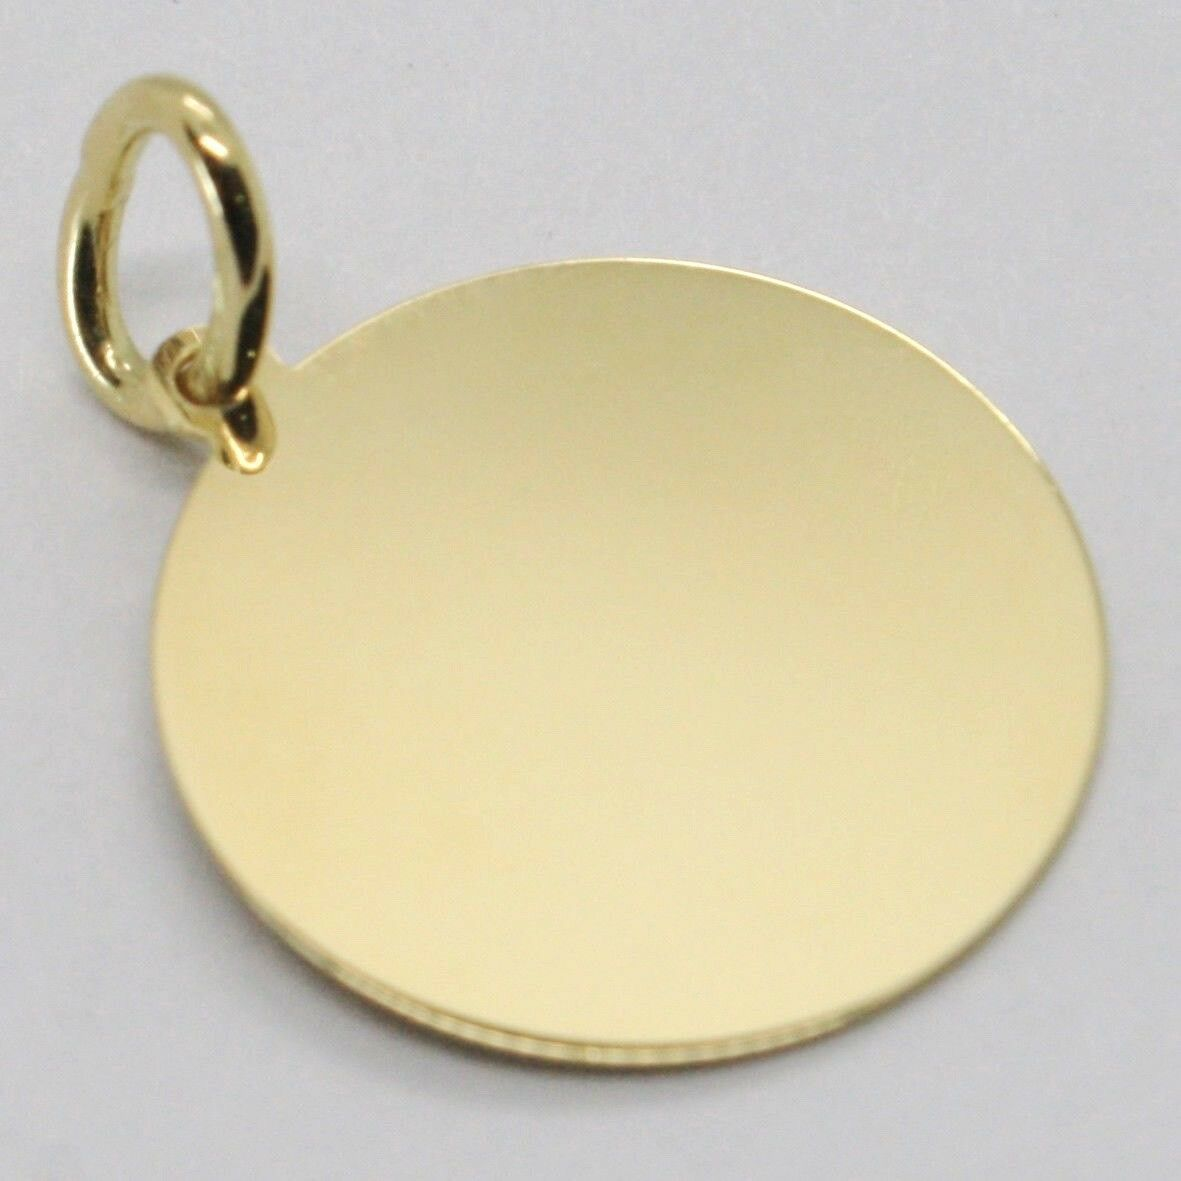 Yellow Gold Pendant 750 18K, Globe Flat, Satin, 16 mm, Italy Made image 4